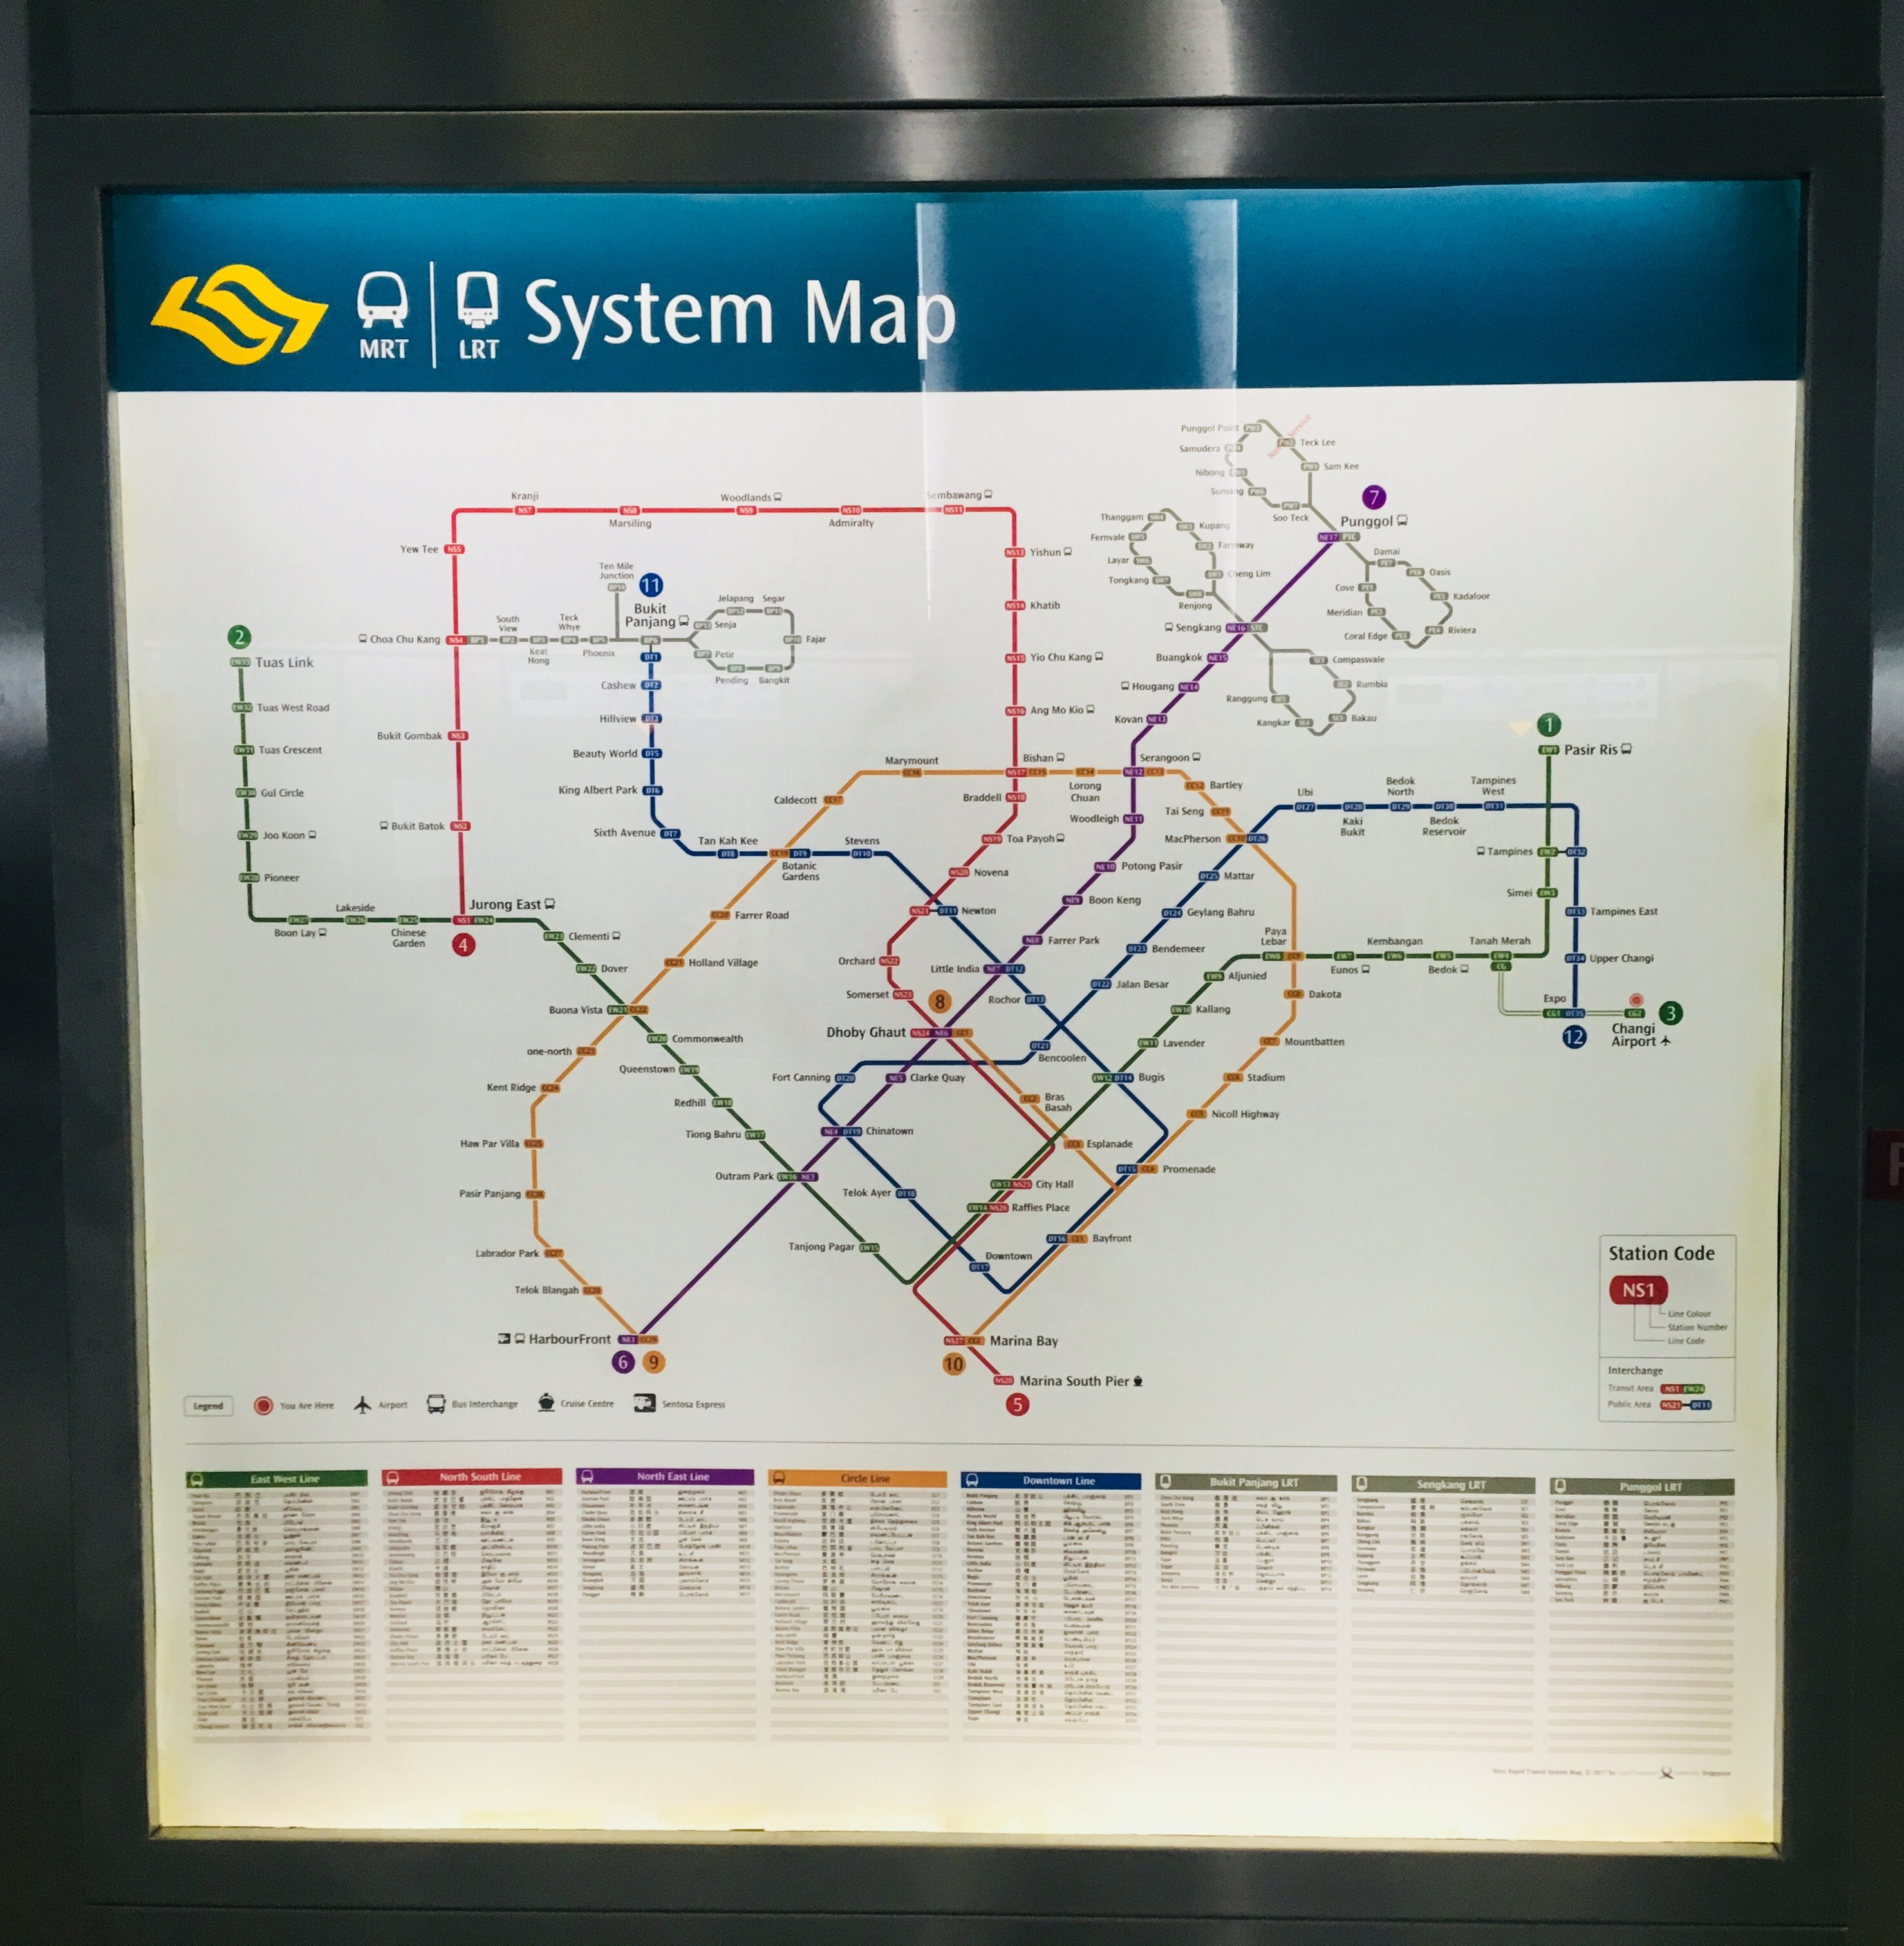 MRT map for Singapore